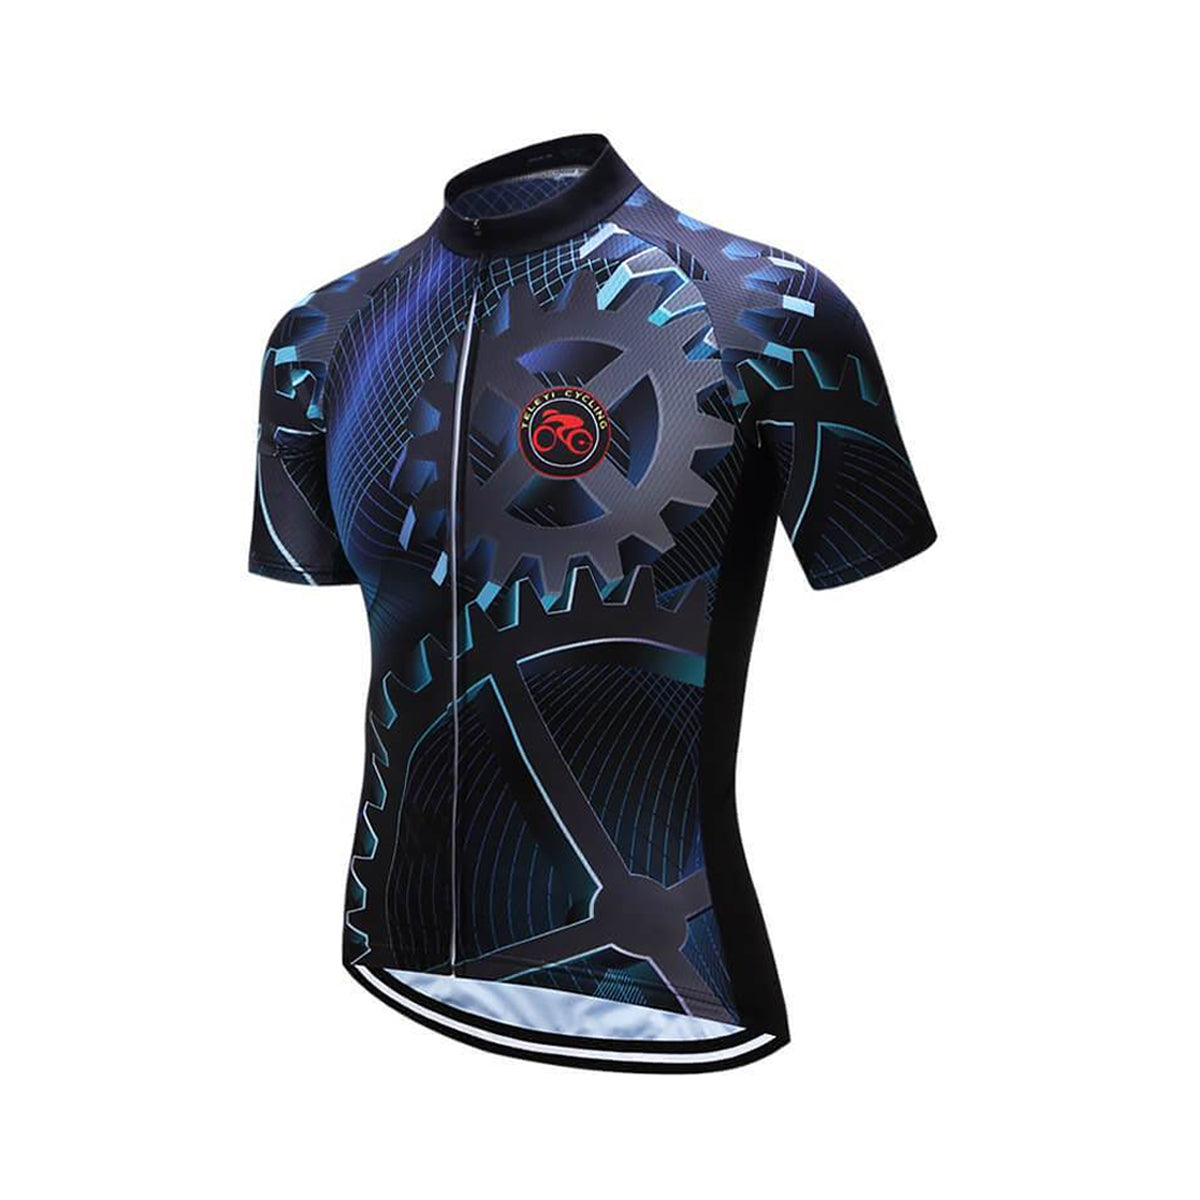 Full Zipper Closure Lightweight Short Sleeve Bike Jersey with Reflective Design